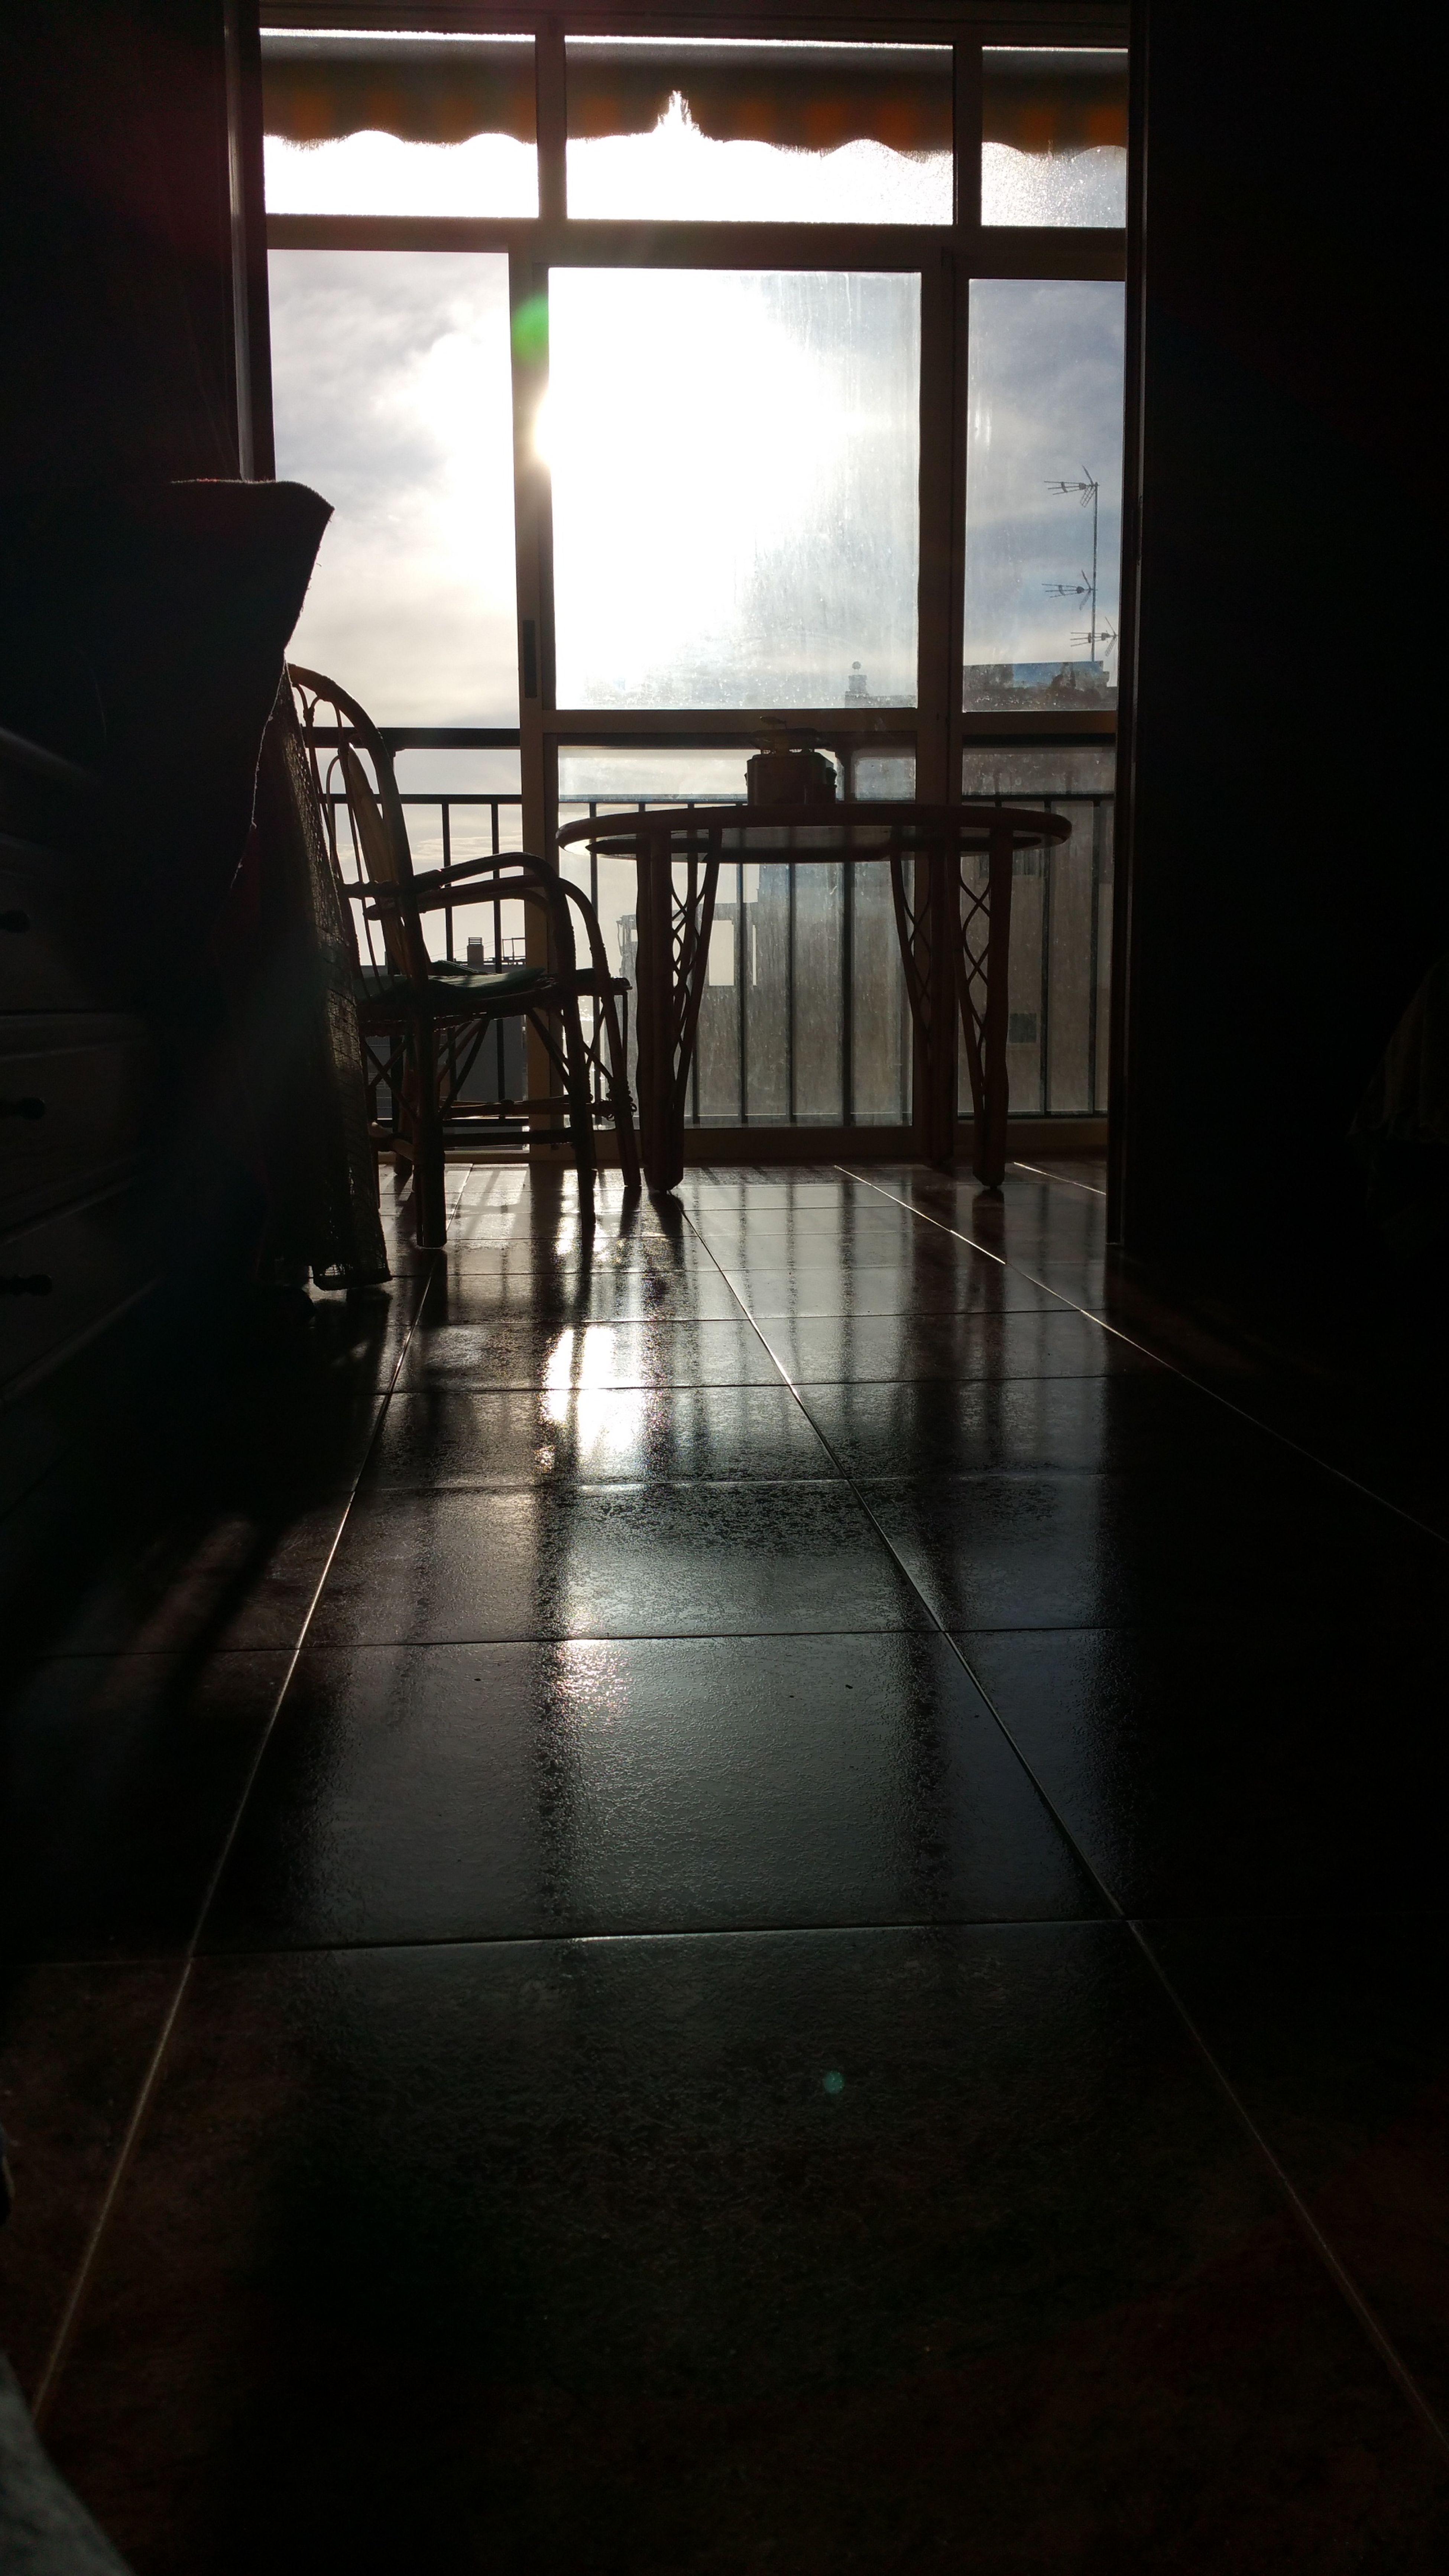 Taking Photos Hello World Hi! Check This Out : Shadows From Living Room'till Terrace/n Nice View Shadows And Backlighting !